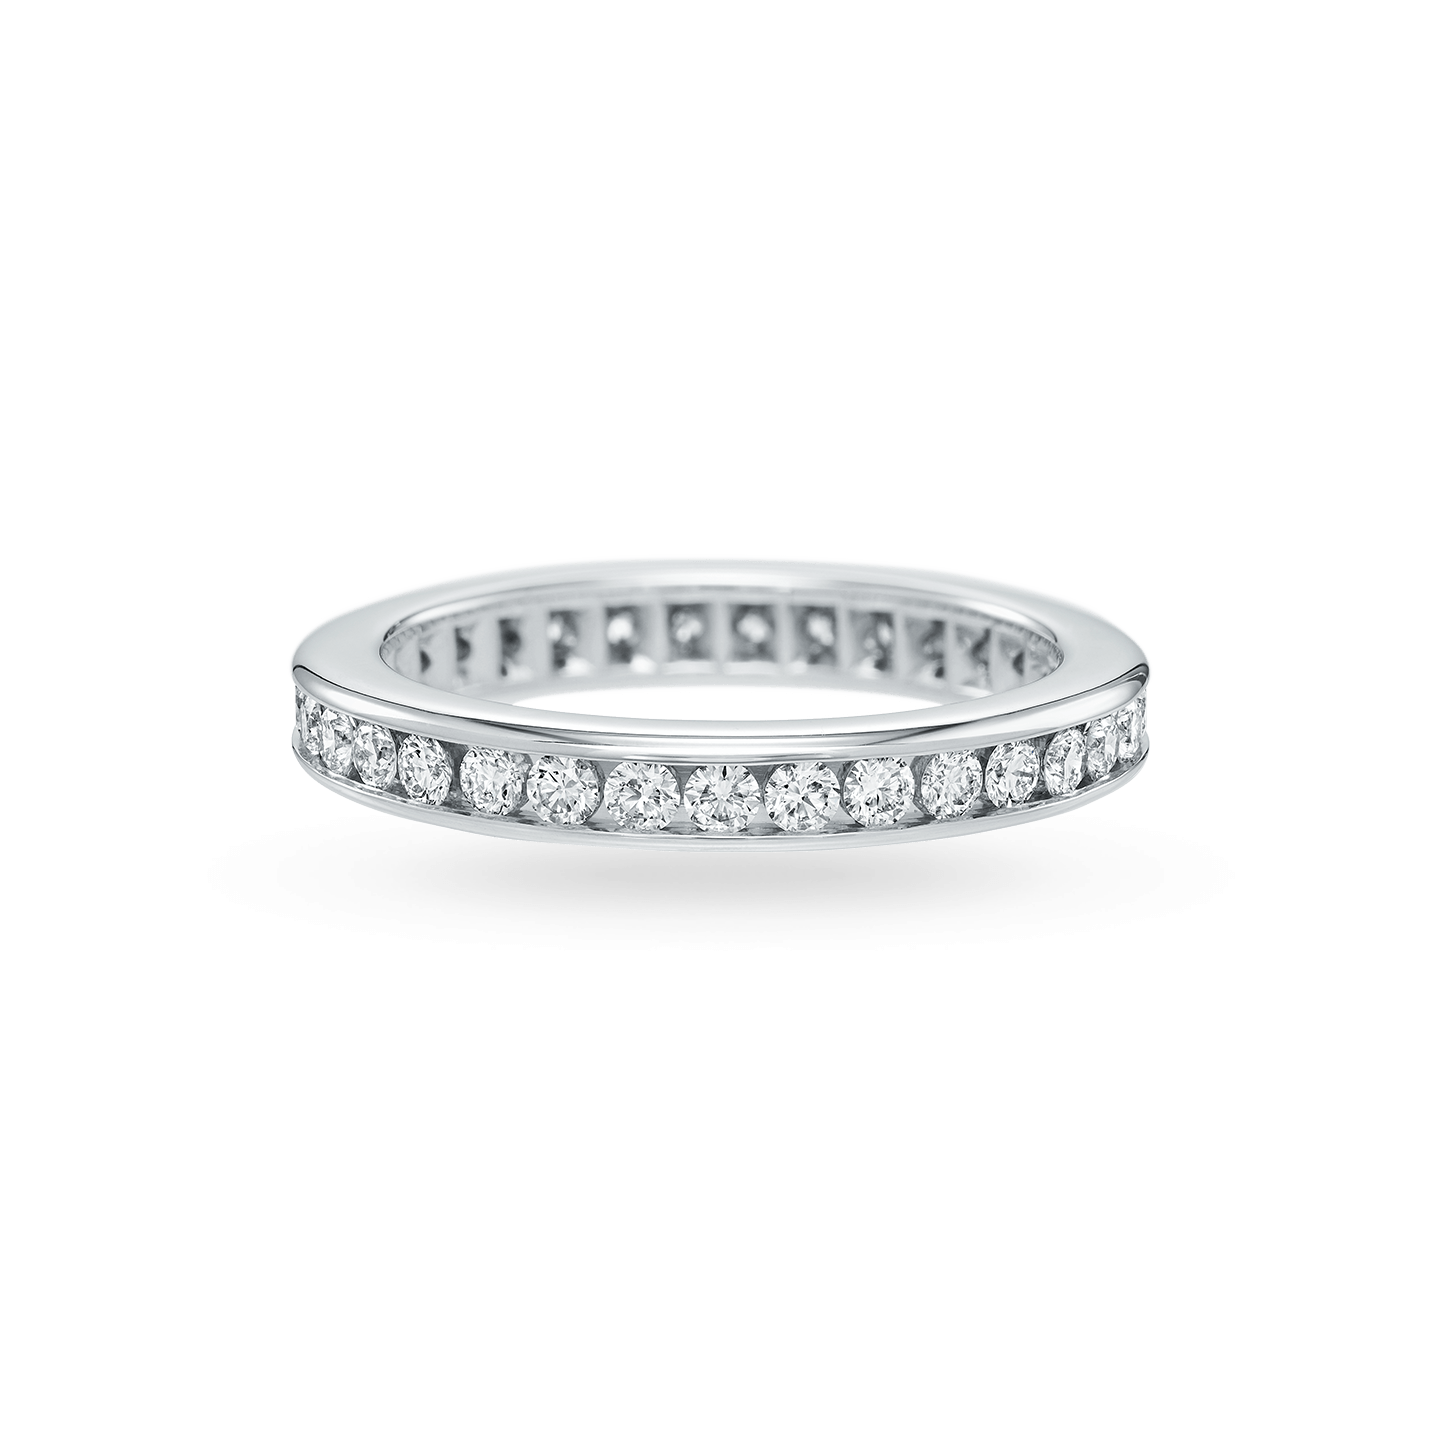 Channel-Set Round Brilliant Diamond Wedding Band, Product Image 1